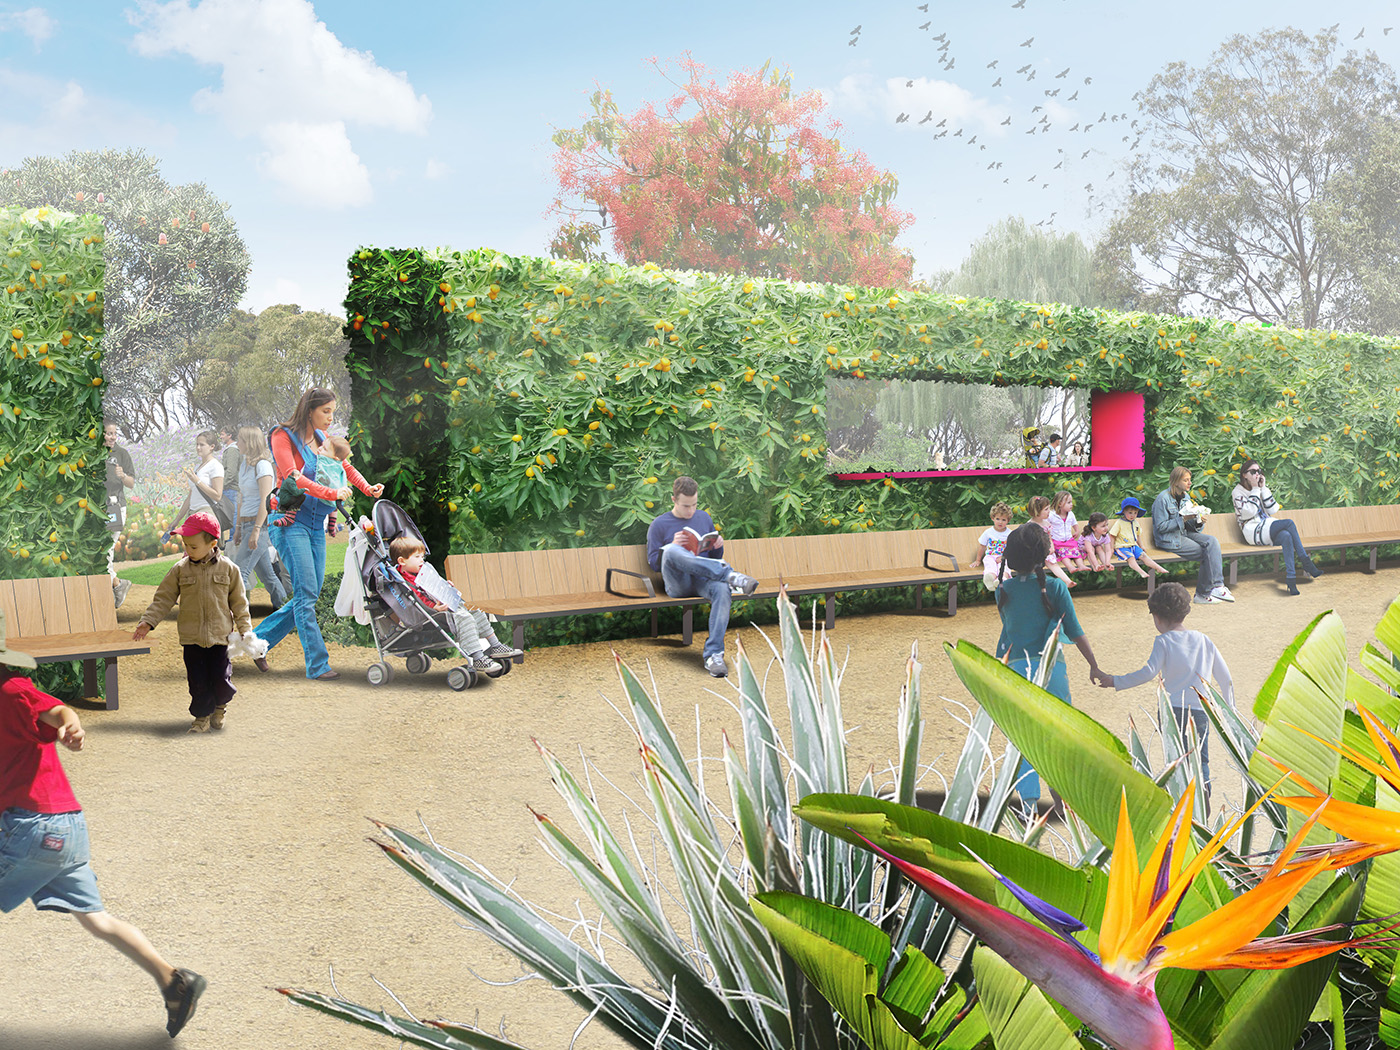 The 3.5-hectare garden is a contemporary, future-focused addition to Bendigo's historic botanic garden precinct that responds to the challenges of climate change in inspiring and immersive ways. Image: Supplied